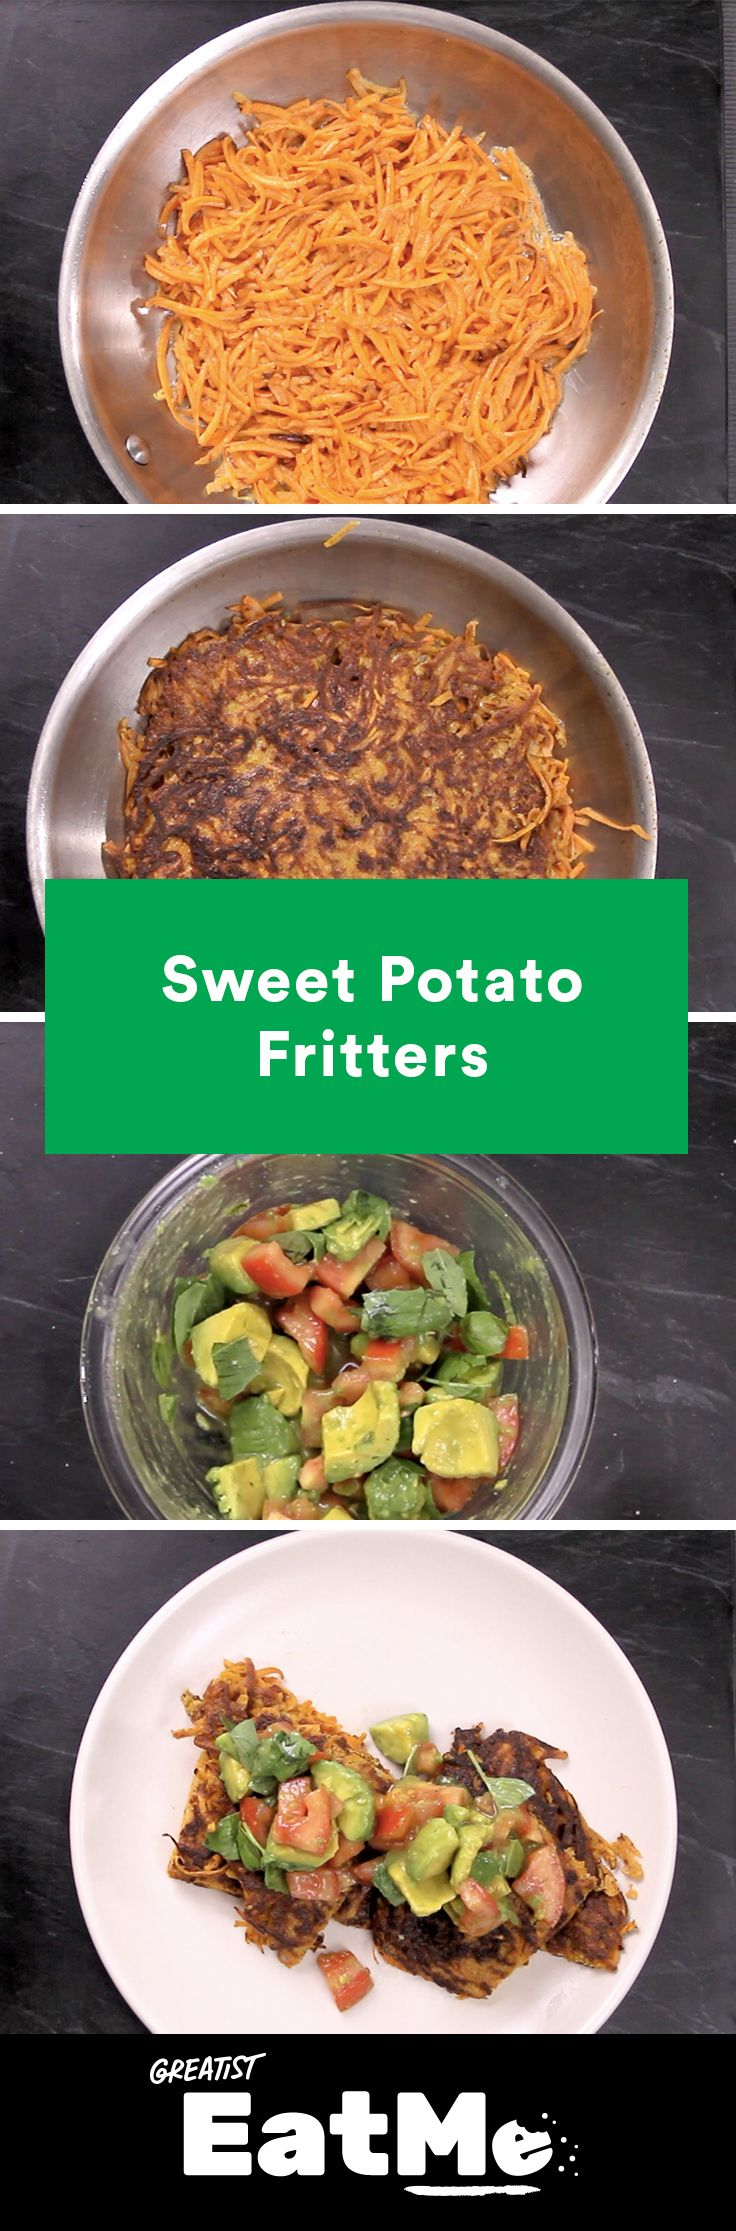 You'll want to make them every night. #sweetpotato #fritters #recipe http://greatist.com/eat/sweet-potato-fritters-with-avocado-salsa-recipe-video